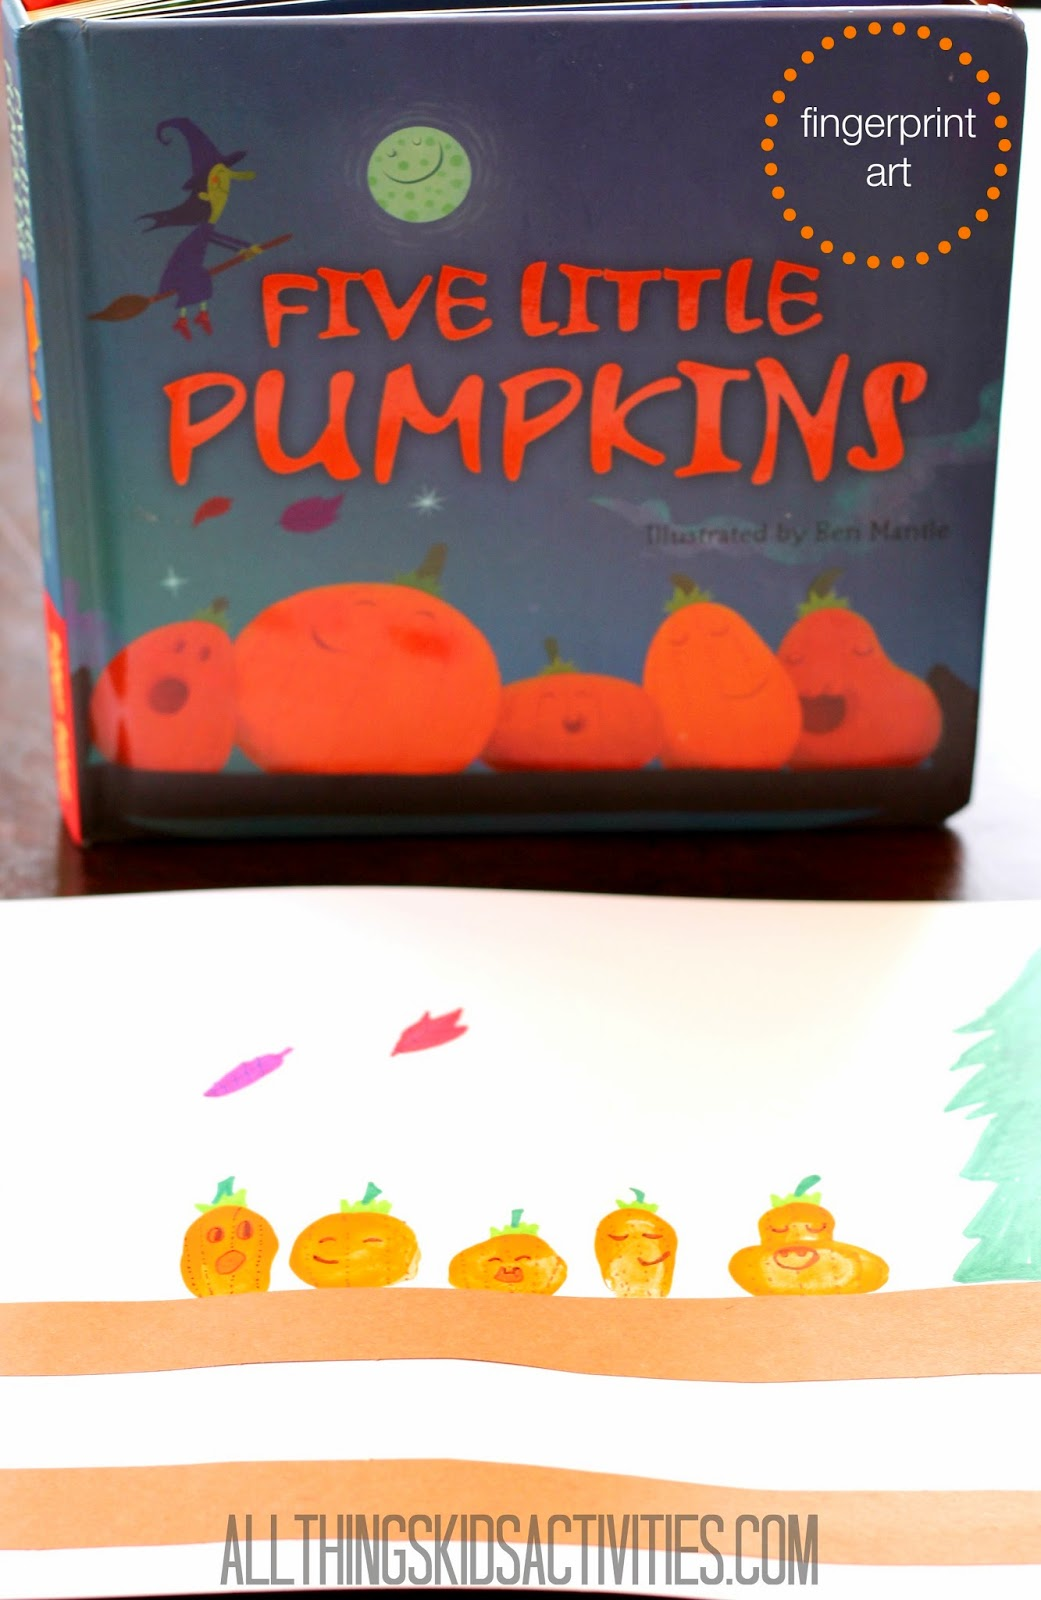 Fingerprint Pumpkin Art for Five Little Pumpkins by FSPDT on ATK